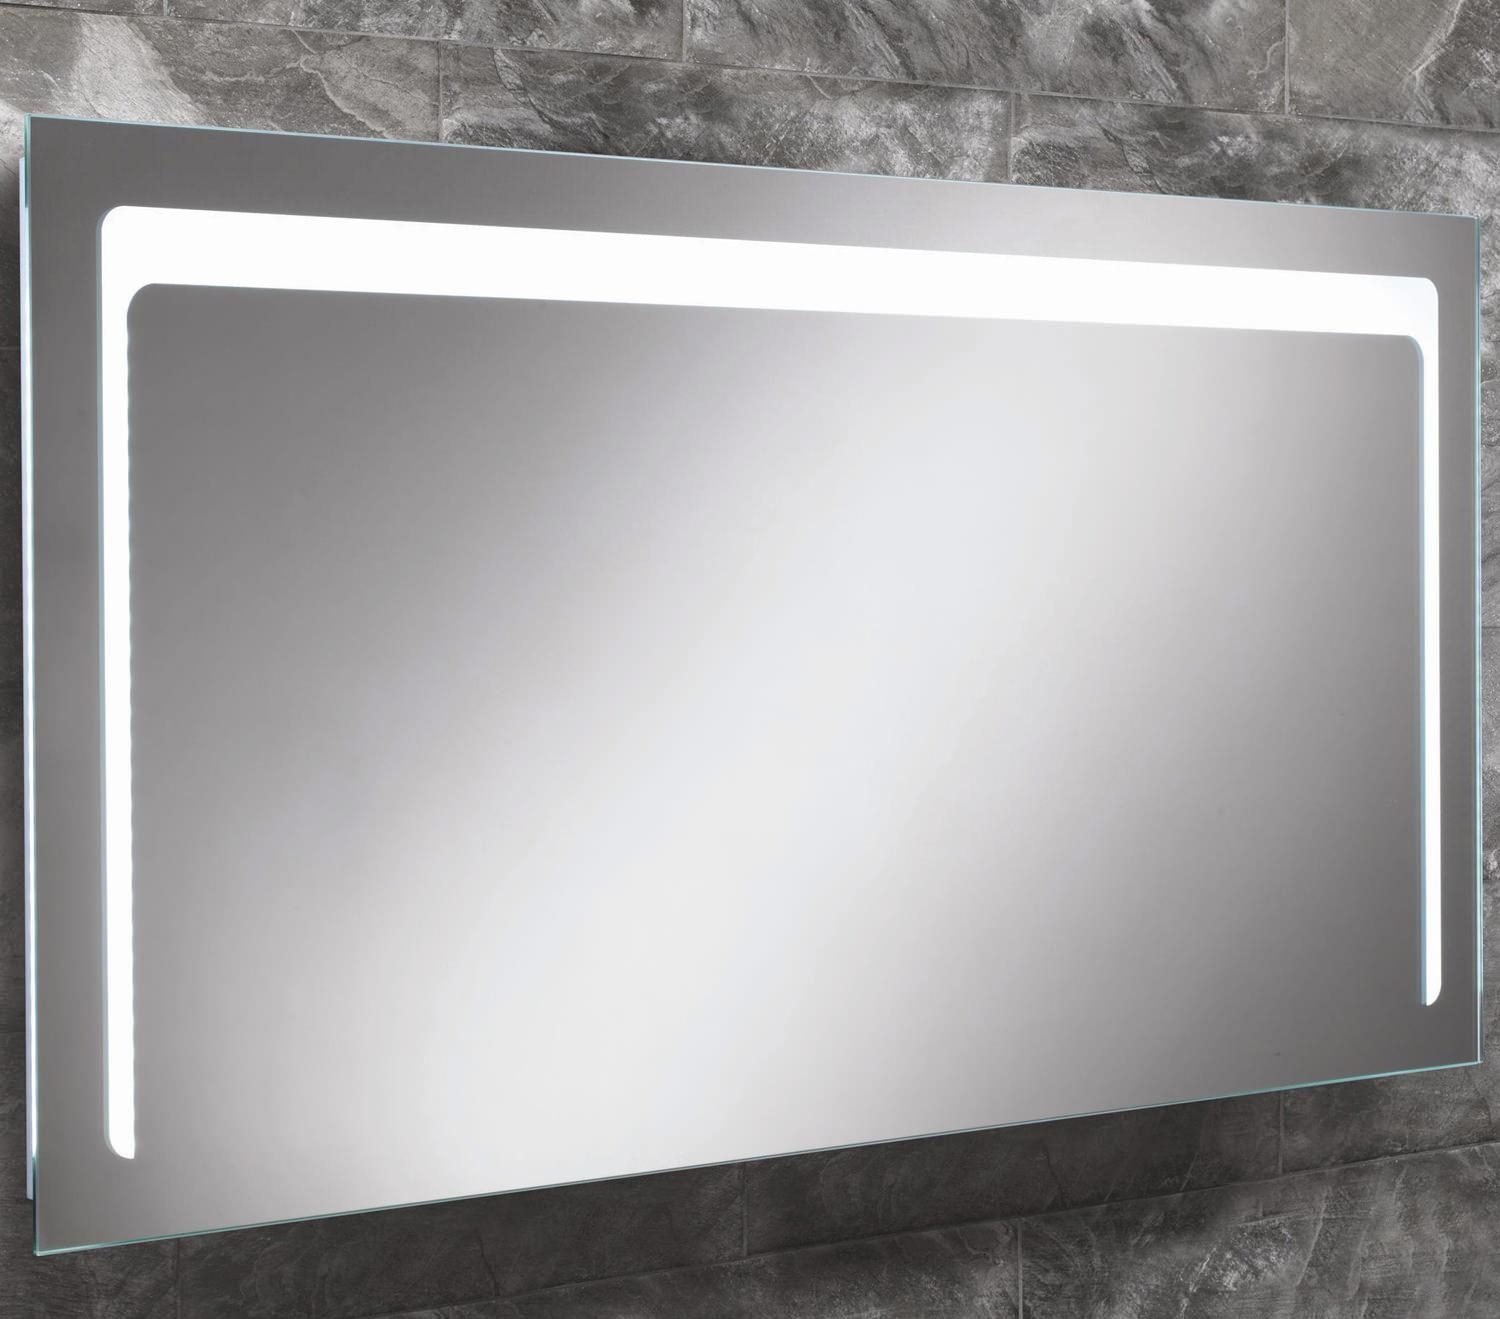 Hib Christa Steam Free Led Back Lit Mirror 1200X600Mm | 77413000 In Large Illuminated Mirror (View 15 of 20)